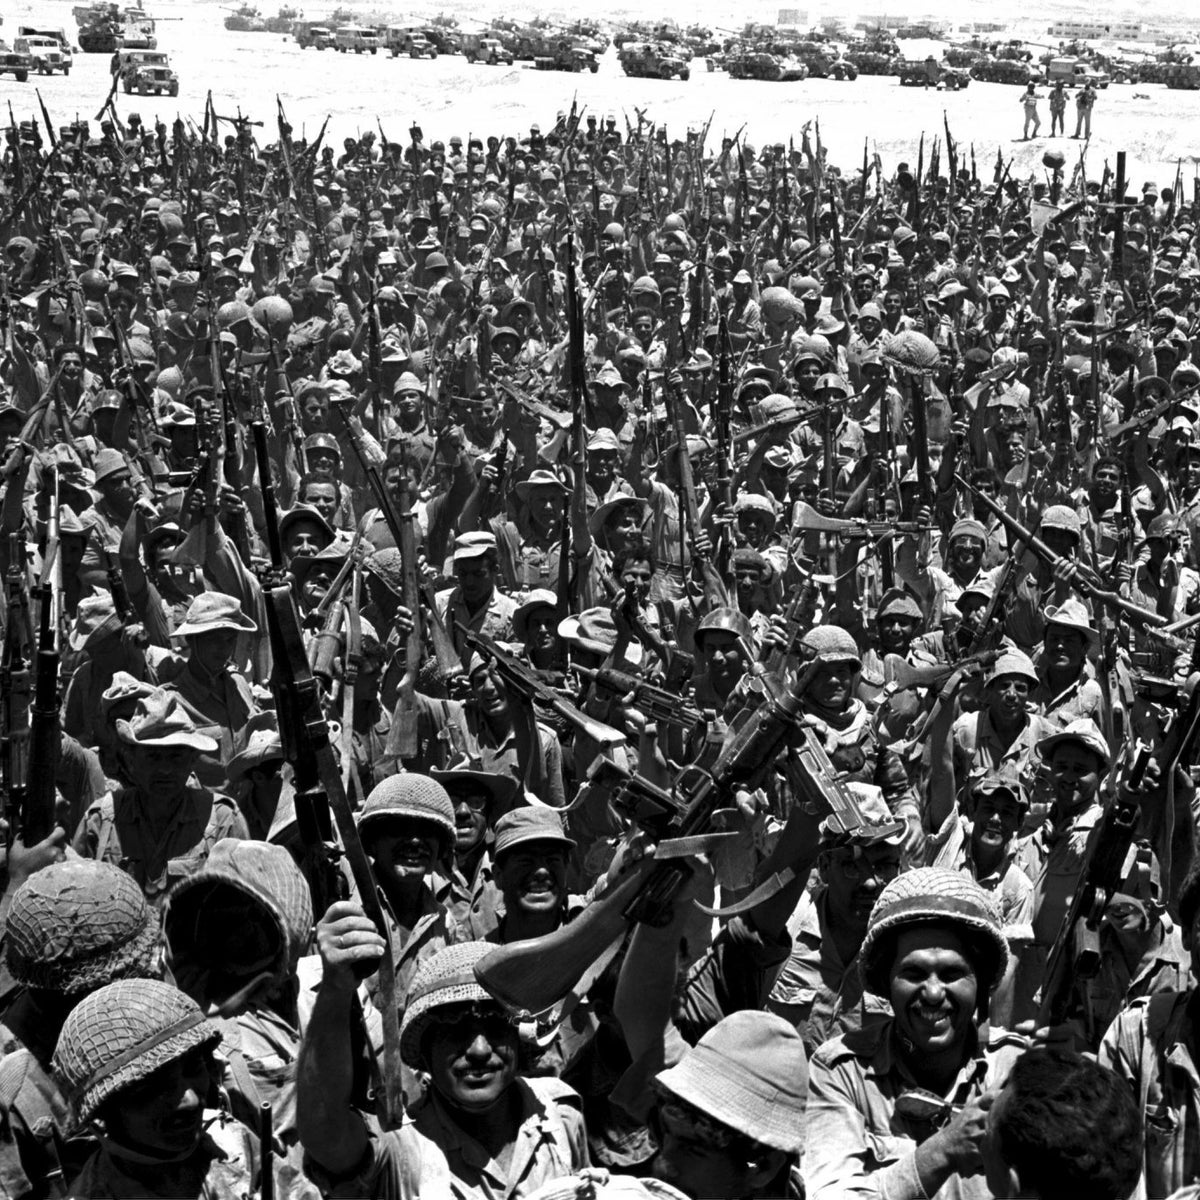 Jubilant Israeli soldiers in Sinai, Egypt, at the end of the Six-Day War, June 10, 1967.